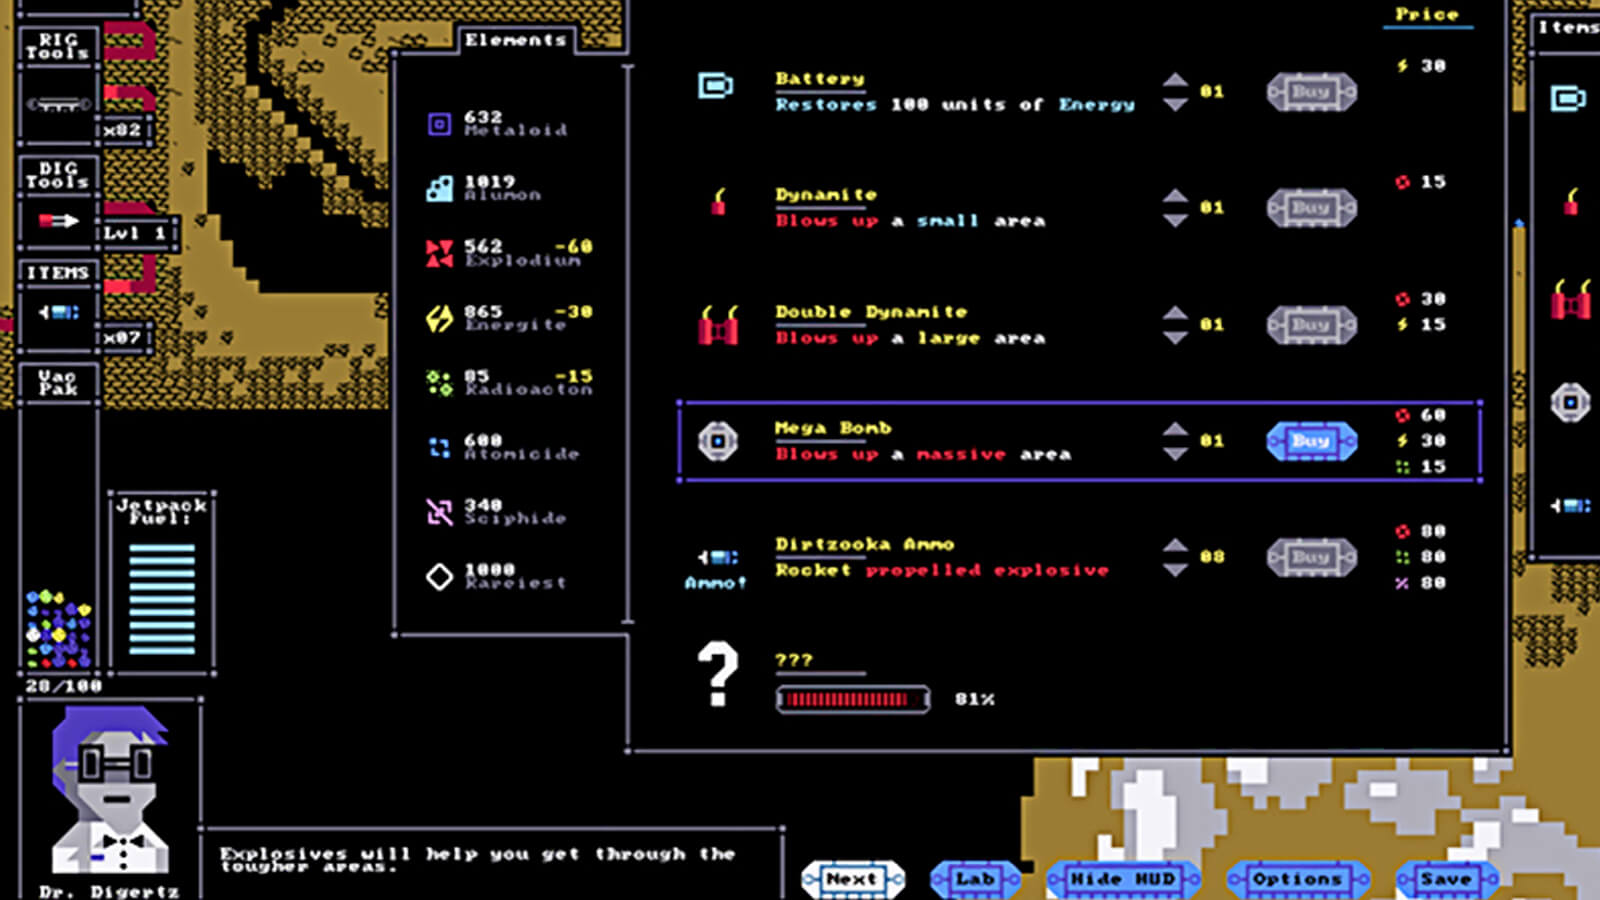 A menu screen displaying various items for purchase.